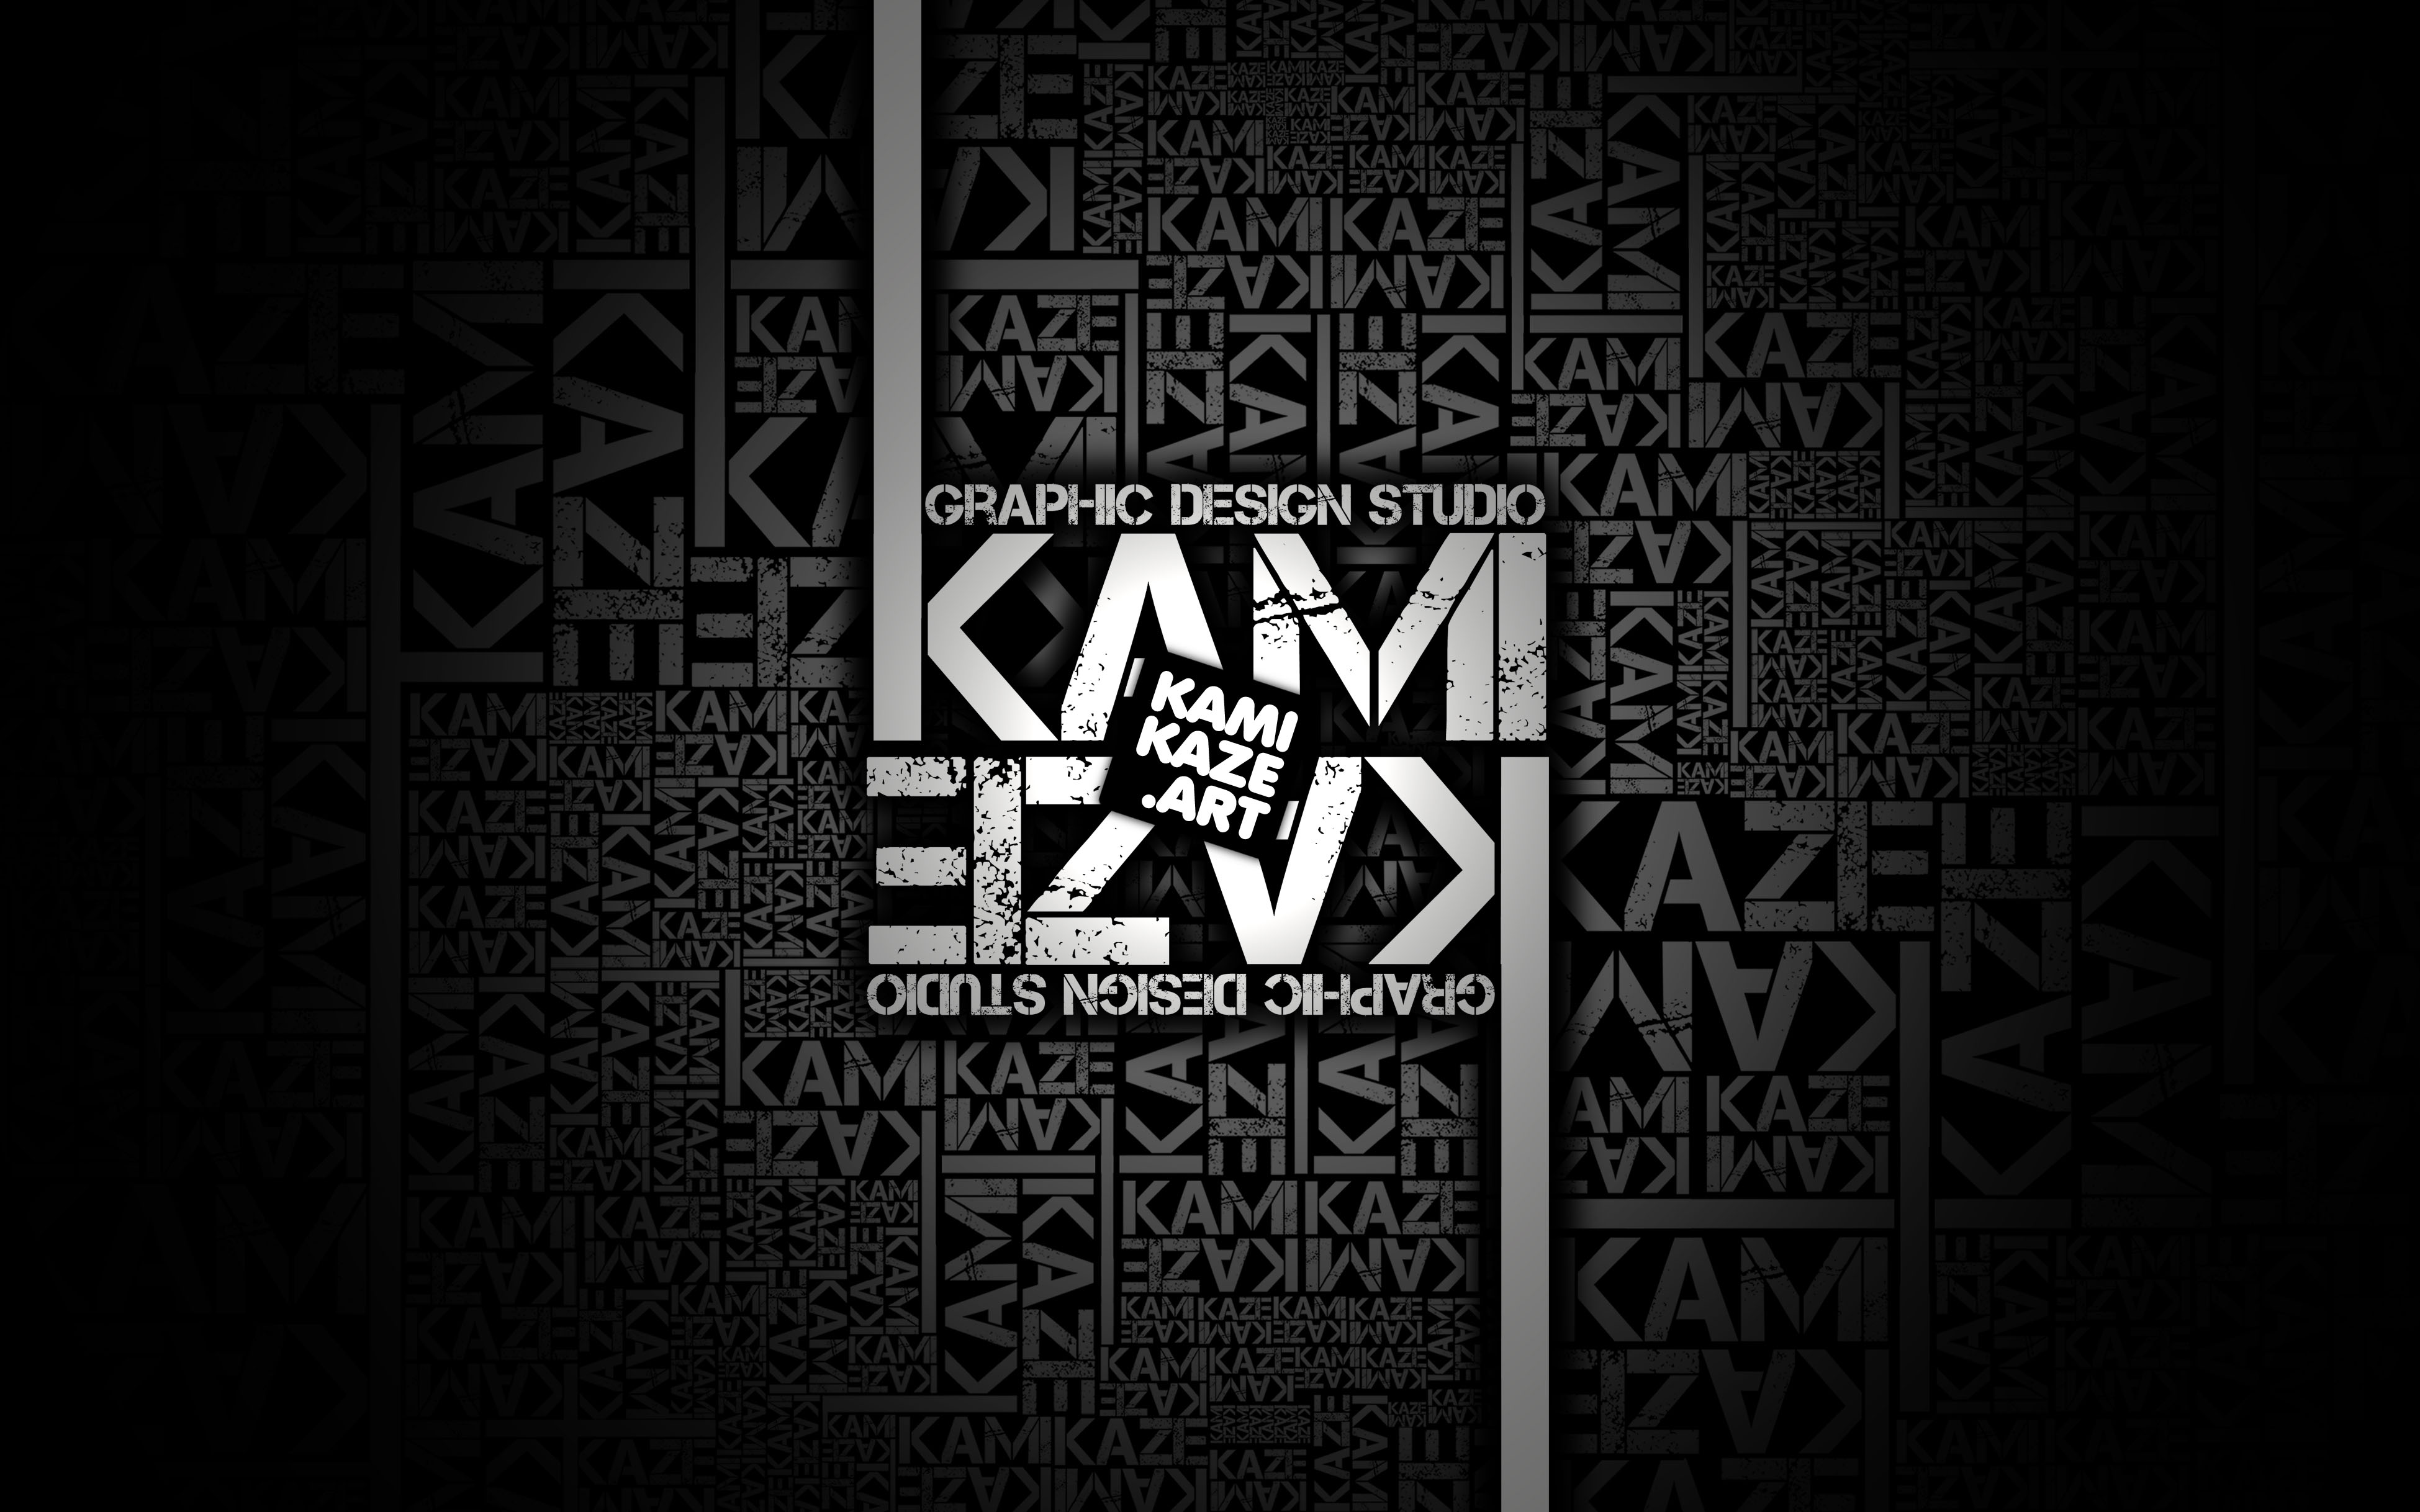 Kamikazeart Typography by sweetkamikaze on DeviantArt